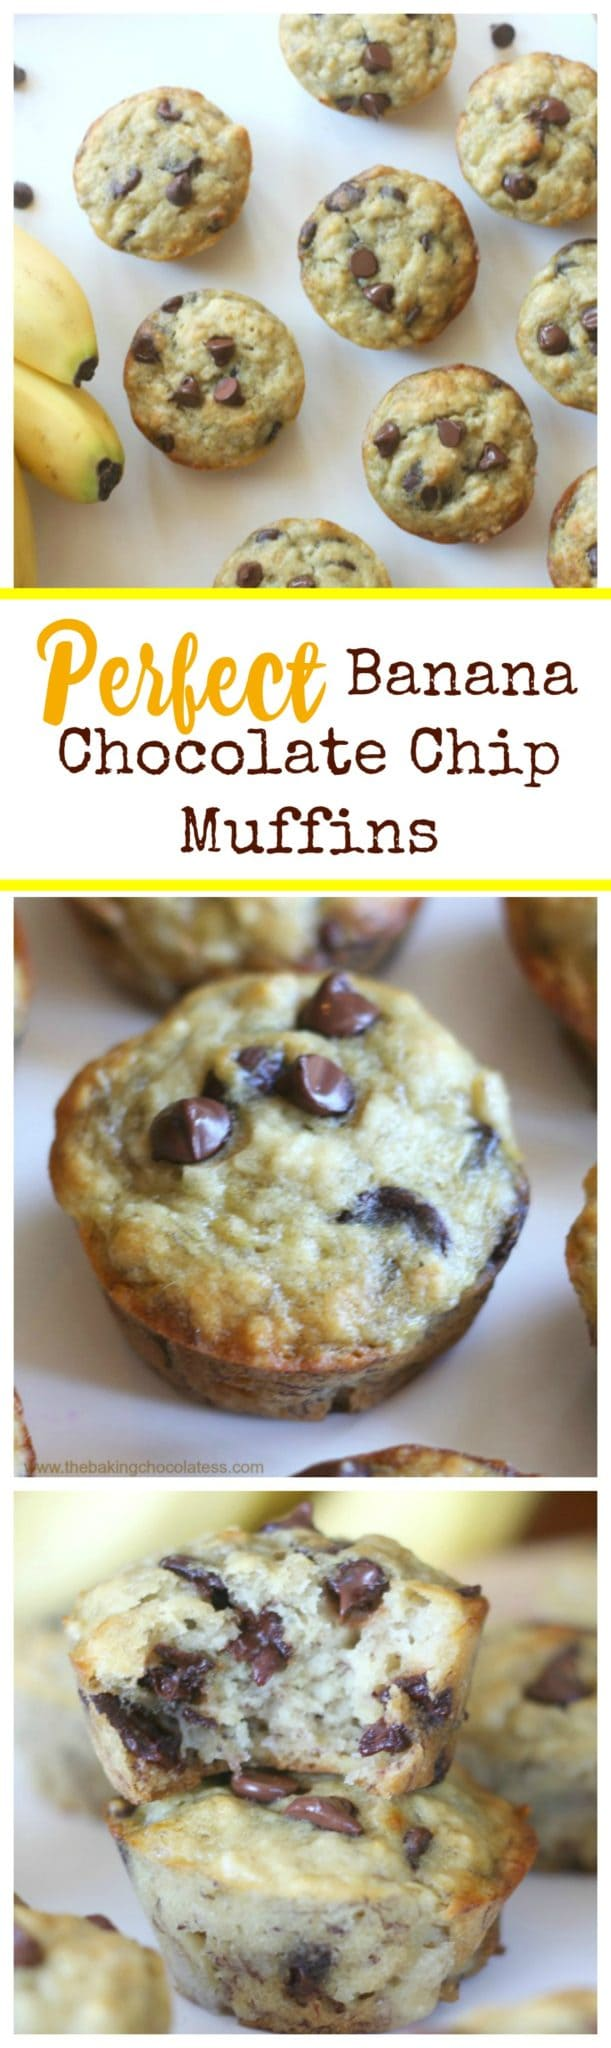 Perfect Banana Chocolate Chip Muffins  - It's such a simple recipe with just the right balance of banana and chocolate. Mix 'em up and bake for 20 minutes. They're super fluffy, moist and Perfect-O!  #banana #chocolate chip #muffins #snack